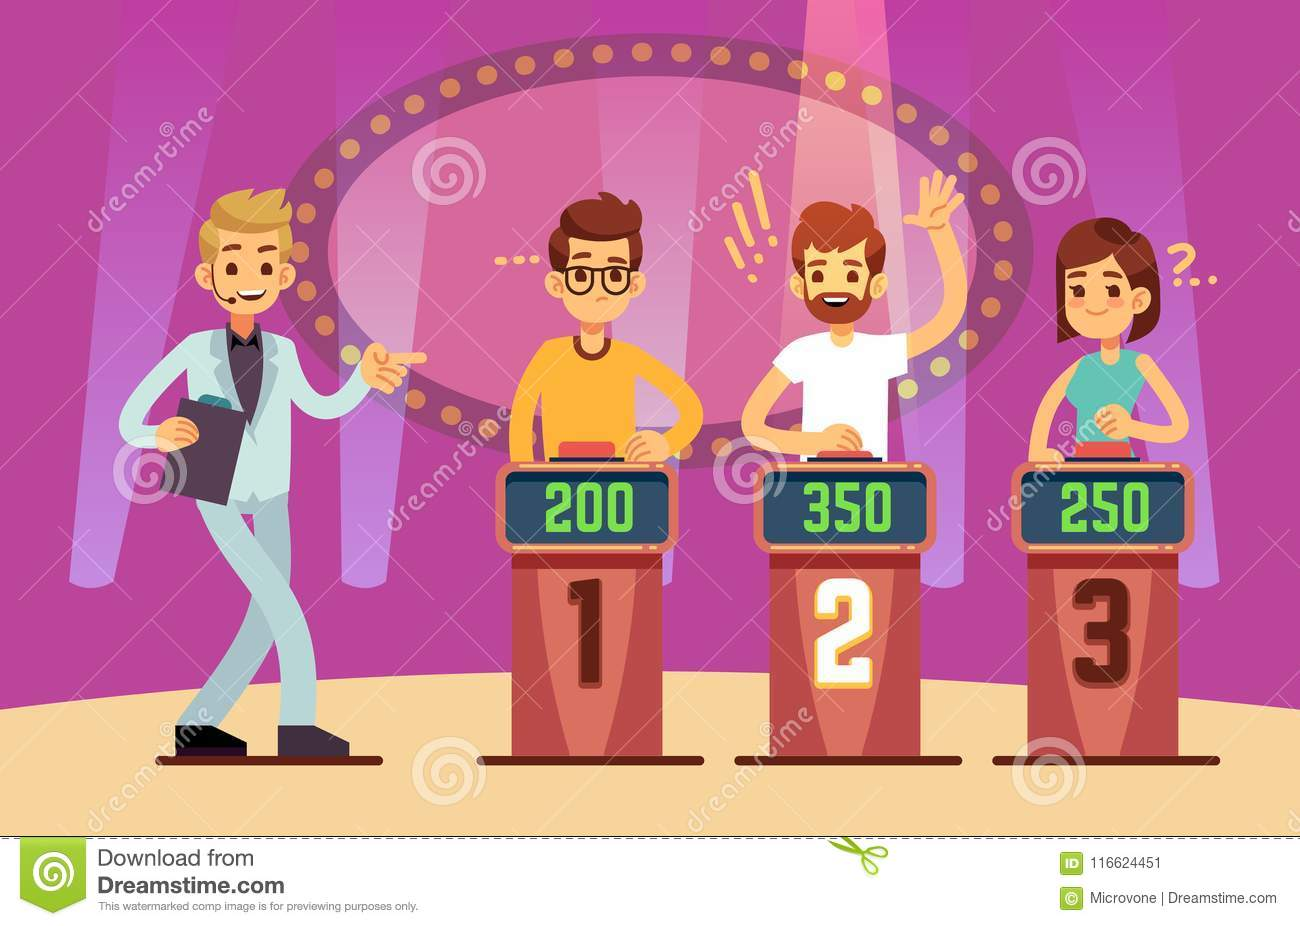 Game Show Stock Illustrations 18 196 Game Show Stock Illustrations Vectors Clipart Dreamstime